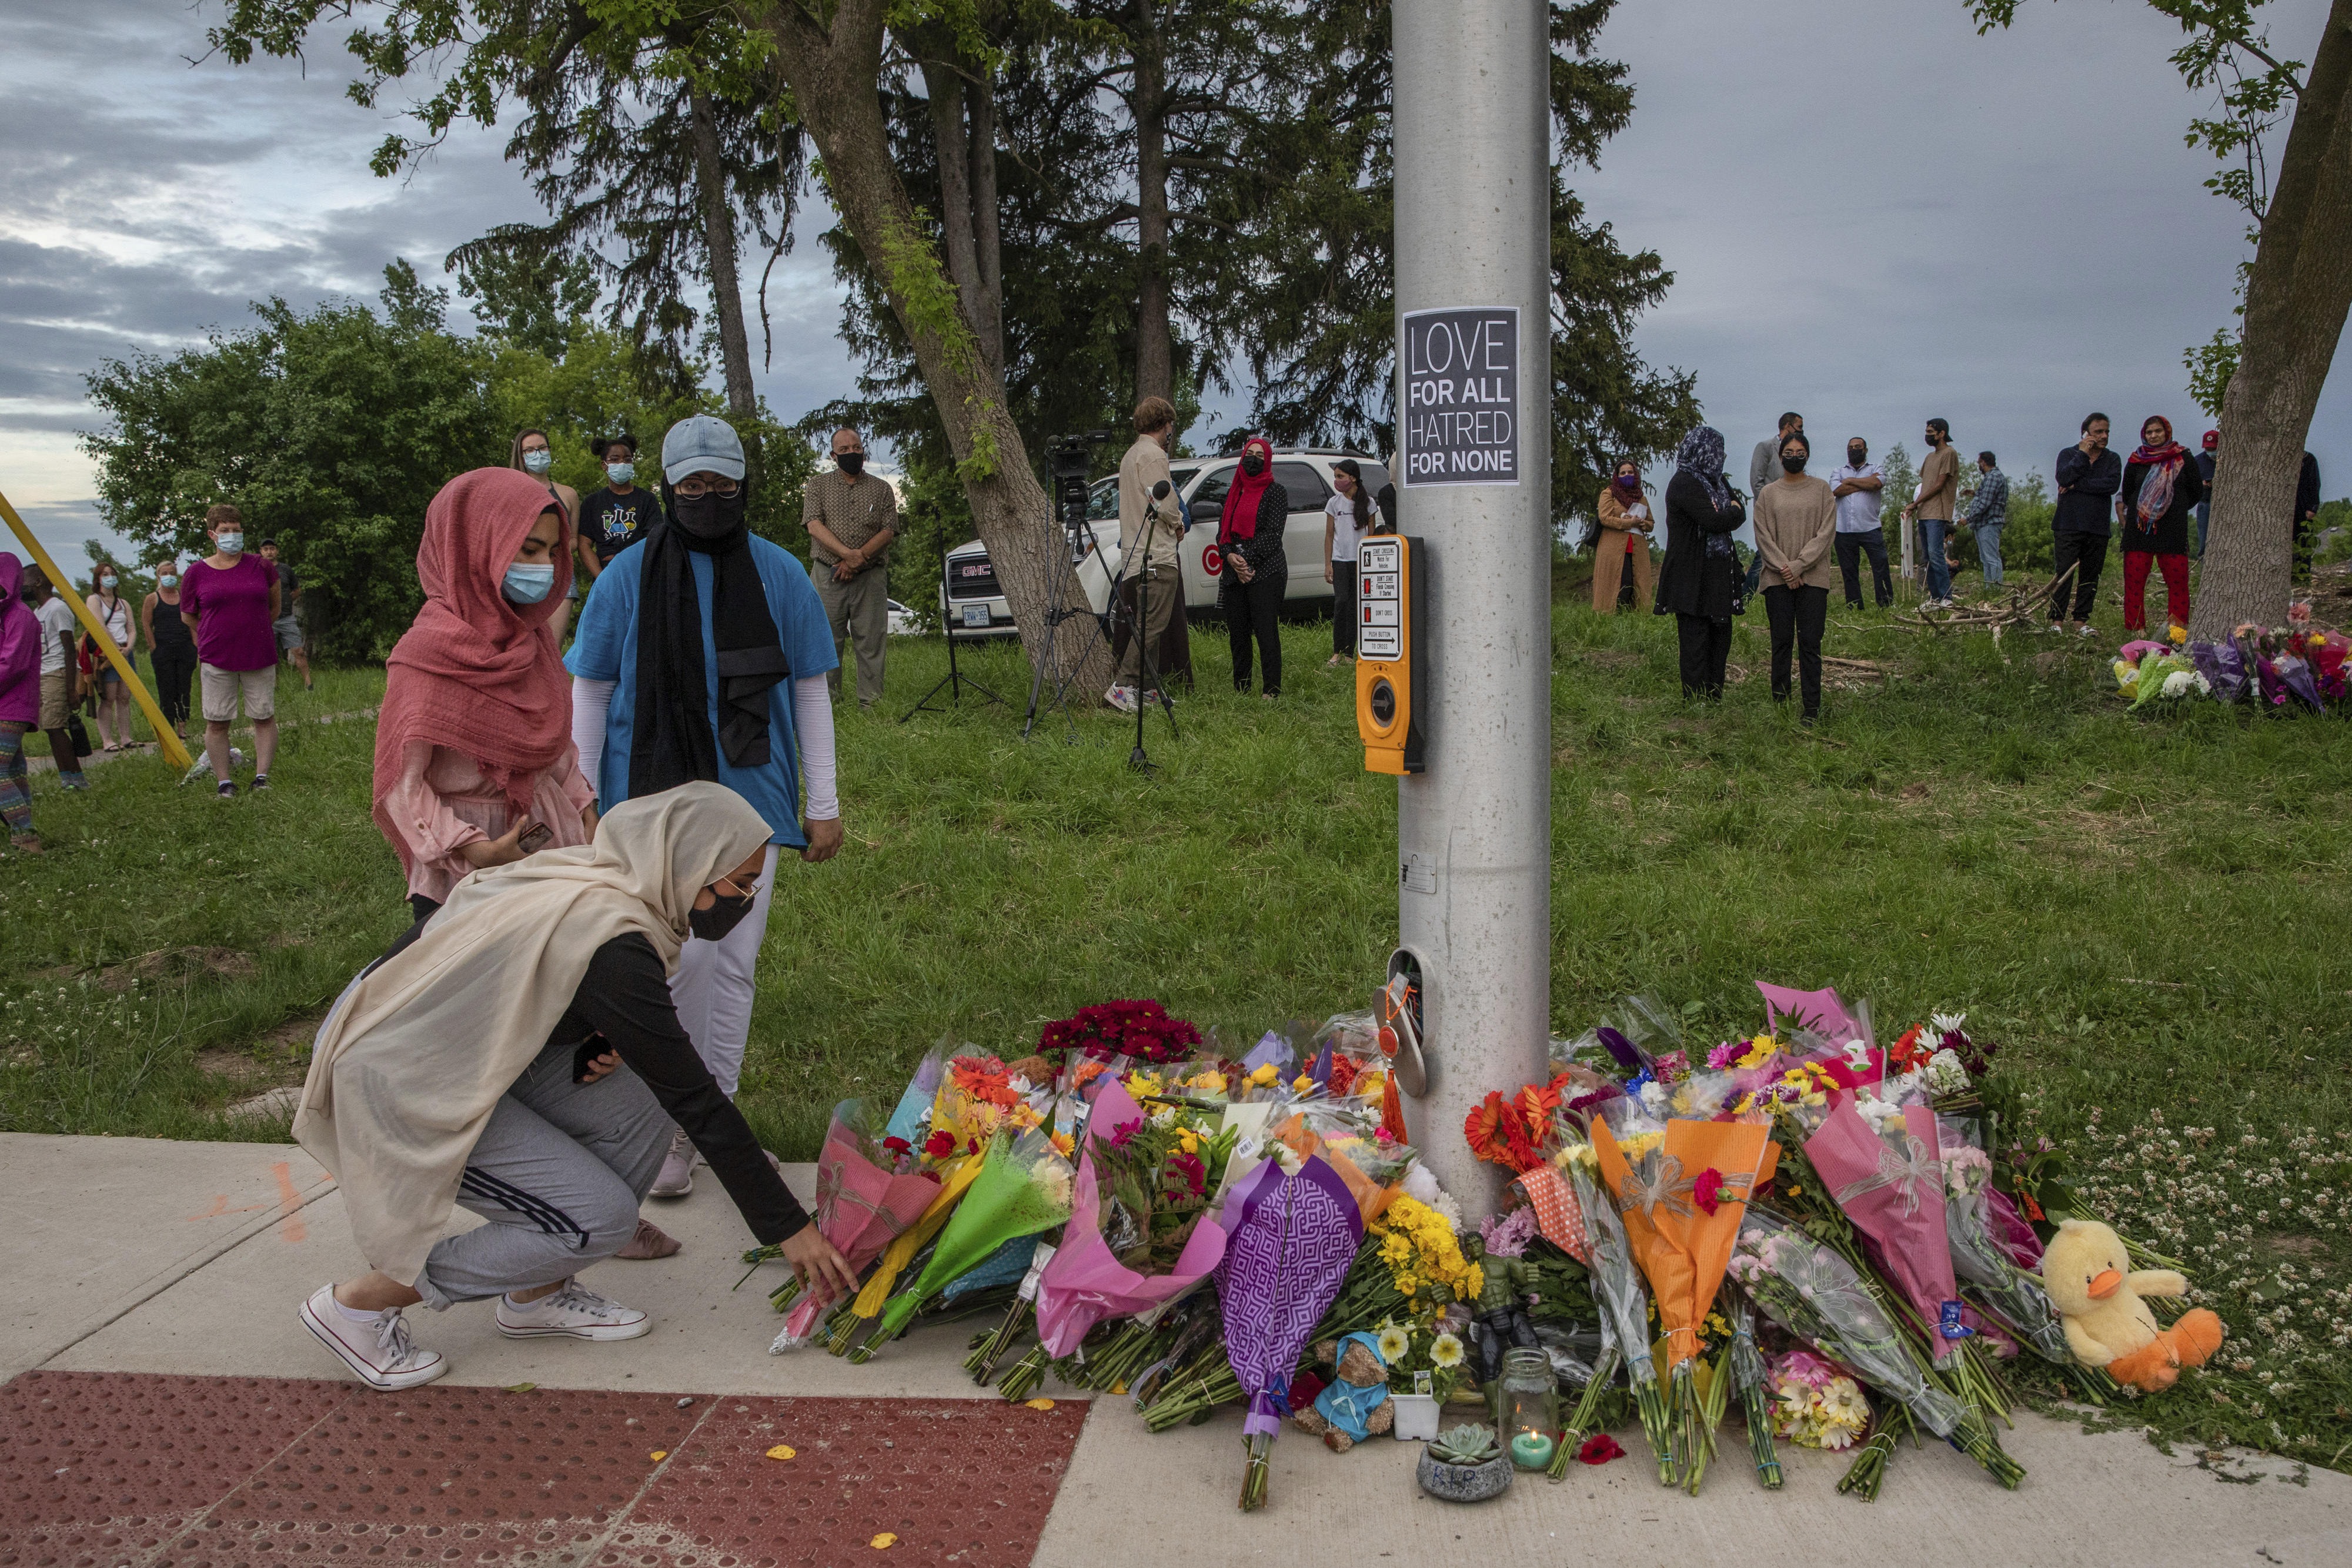 Mourners leave flowers at the site where a family of five was hit by a driver, in London, Ontario (PA)